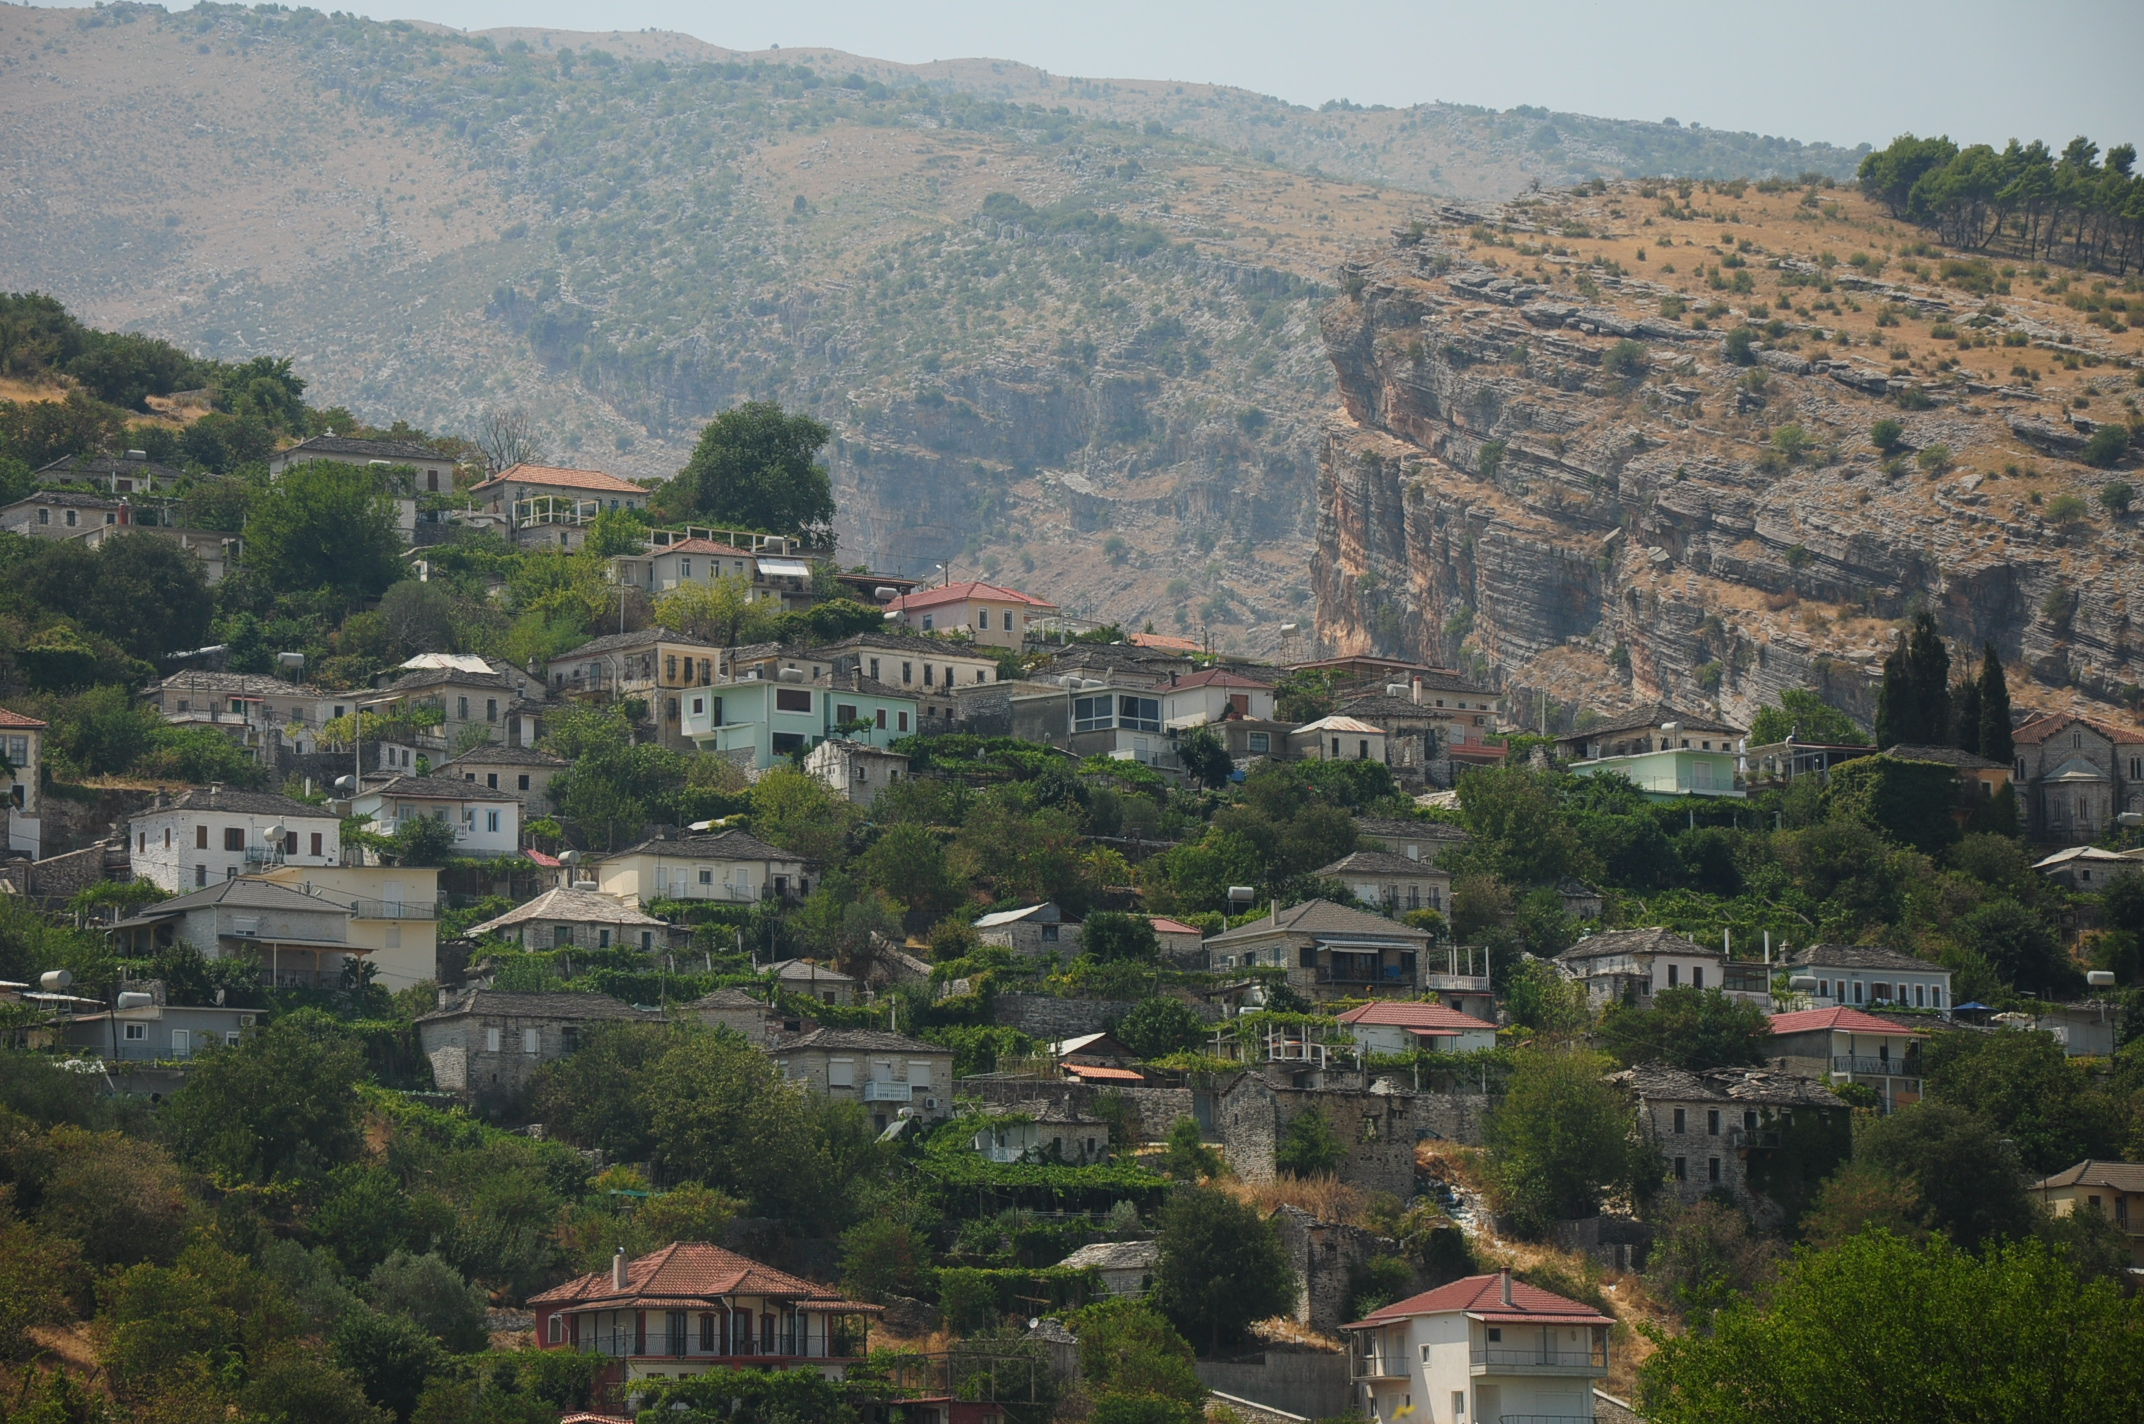 One of the Greek villages set in a dramatic environment